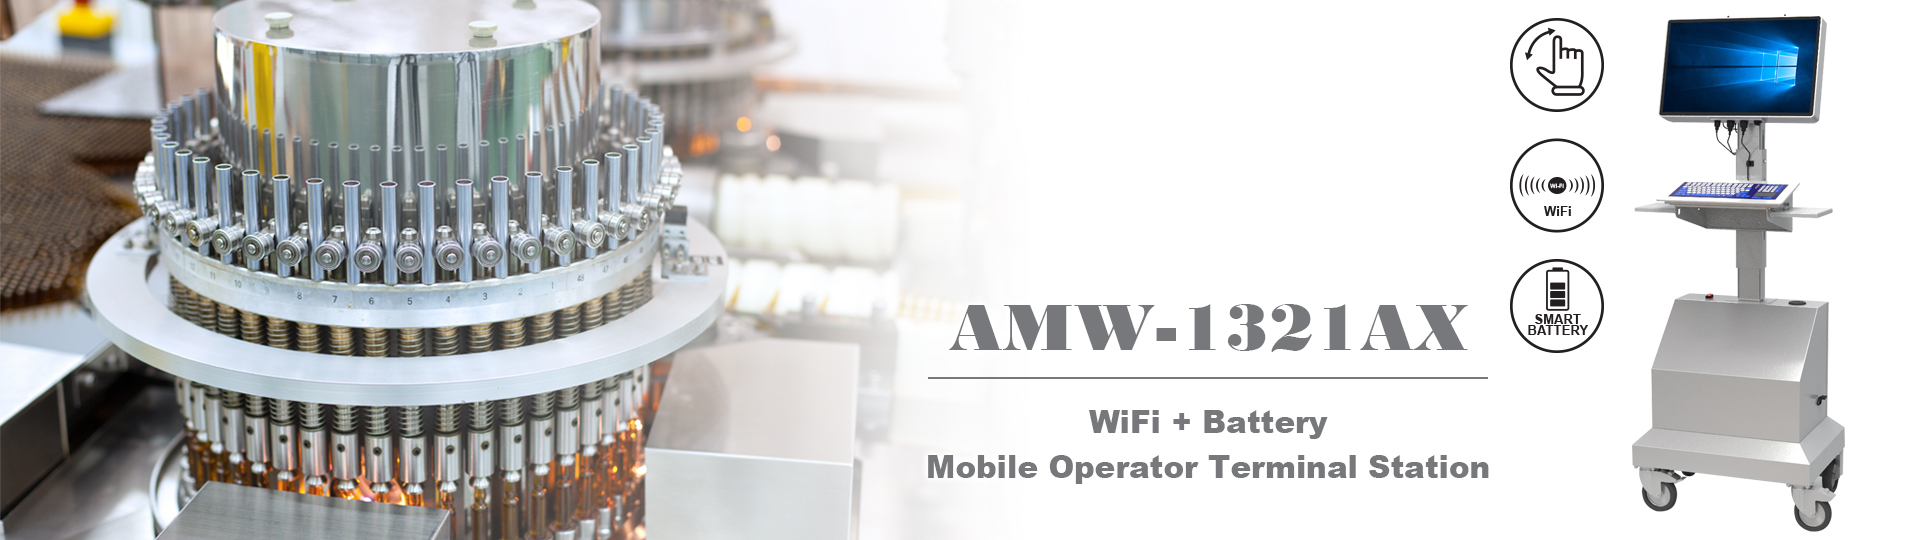 Mobile Operator Terminal Stations - AMW-1321AX